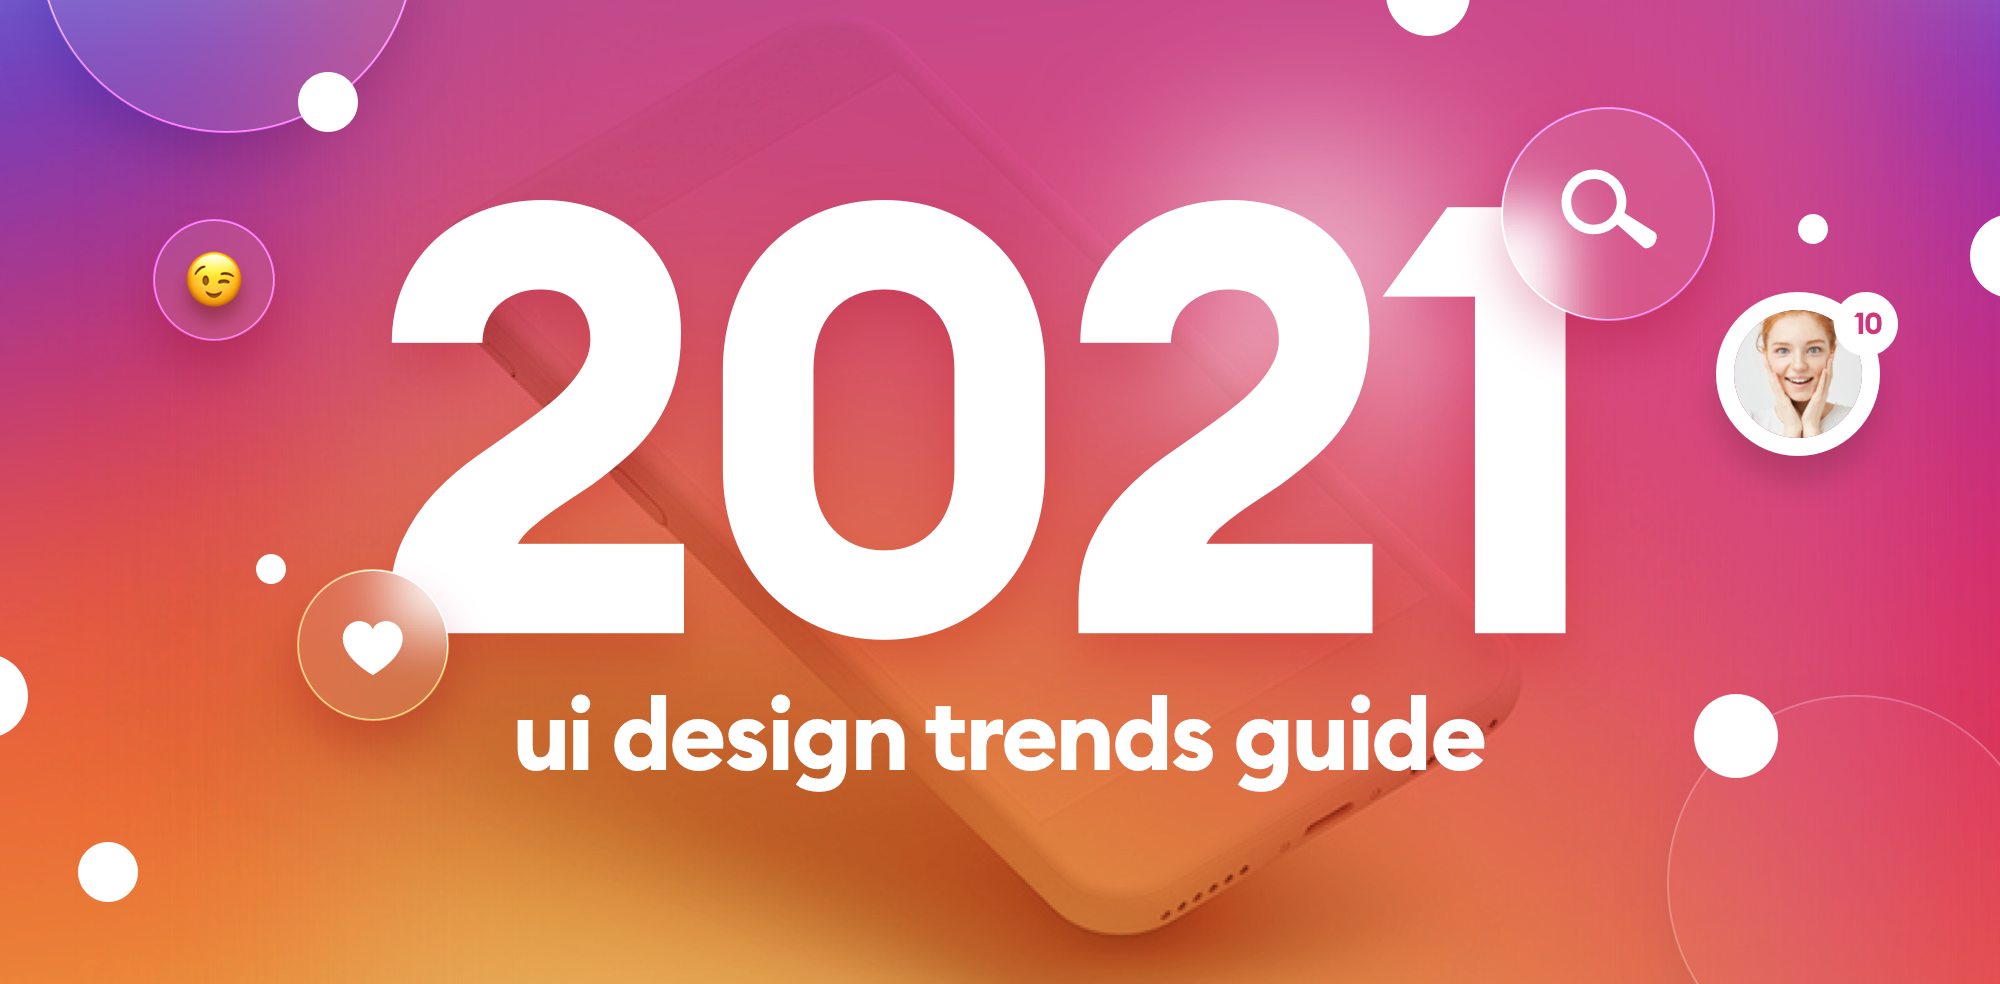 A Guide Of Ui Design Trends For 2021 By Diana Malewicz Dec 2020 Ux Collective